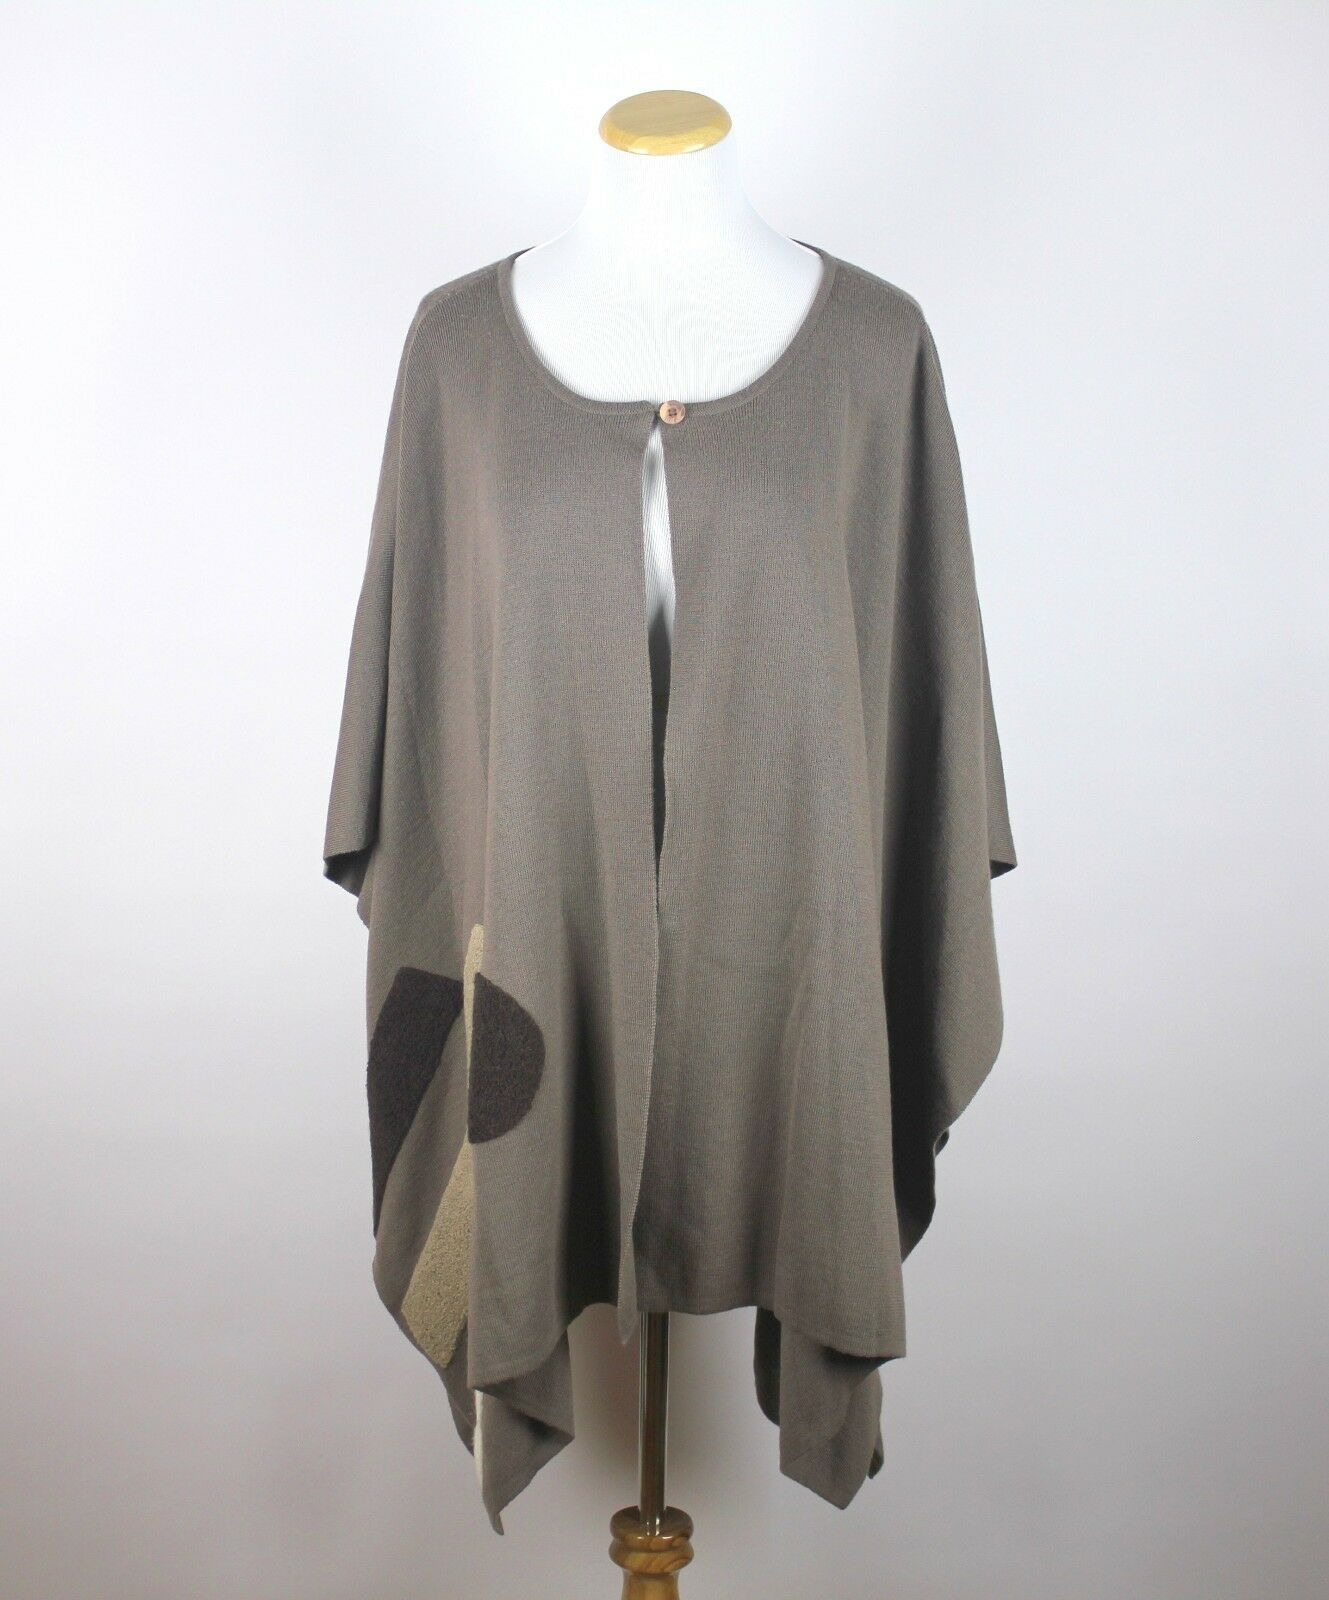 ANIMALE by Jacques Ruc Draped Poncho 50% Wool Sweater LAGENLOOK Size Medium